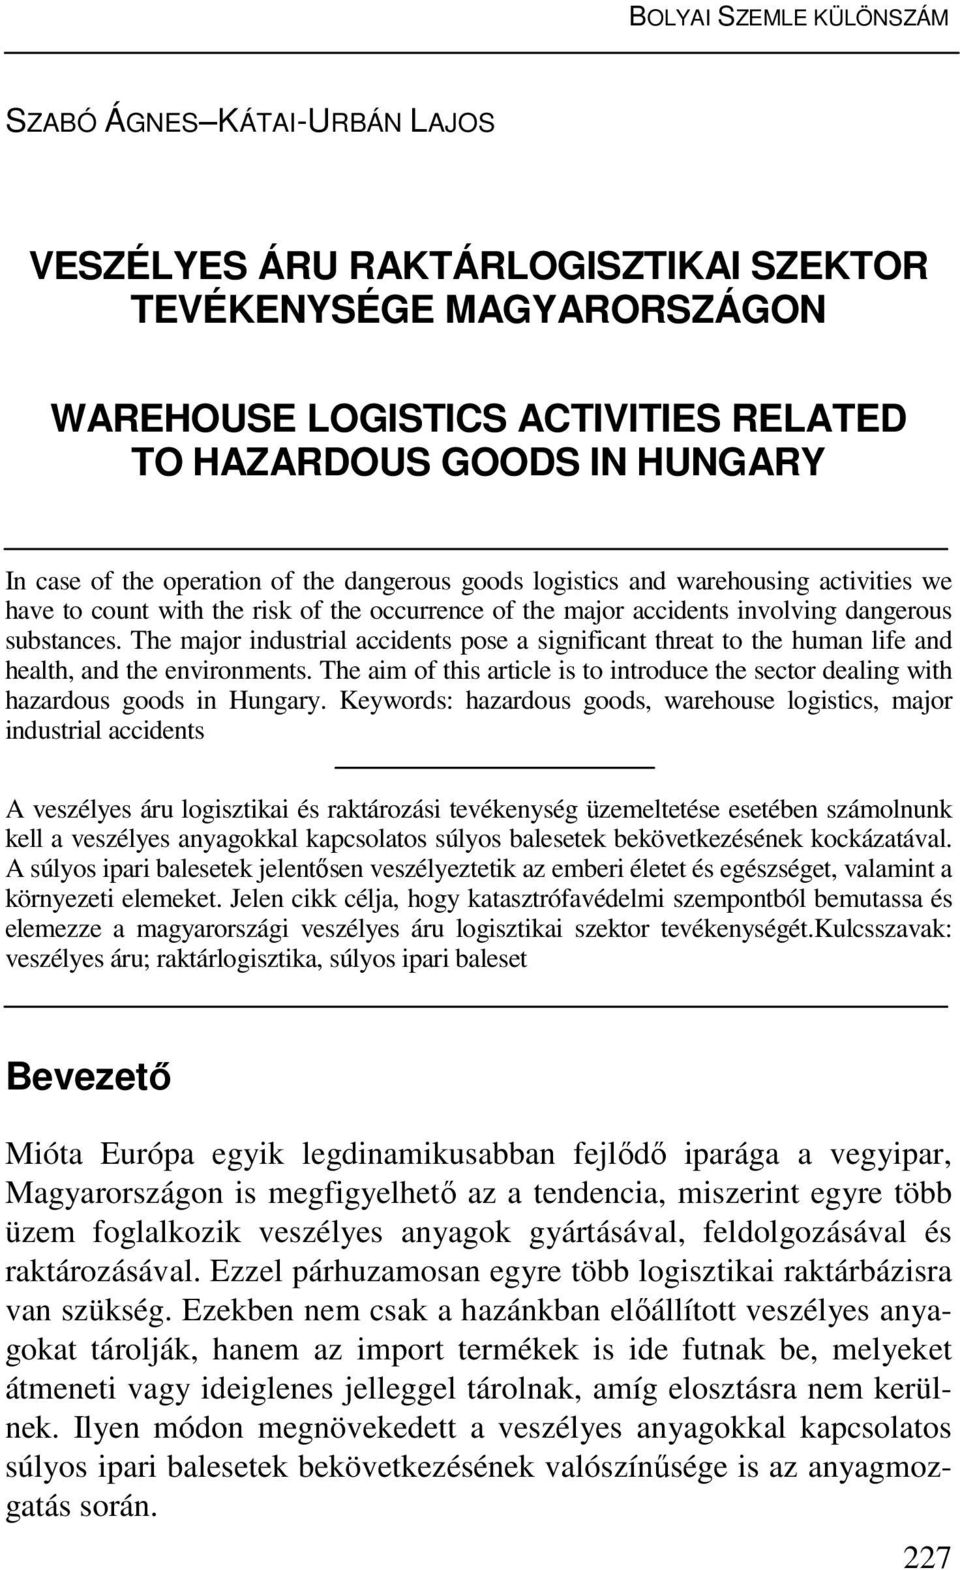 The major industrial accidents pose a significant threat to the human life and health, and the environments. The aim of this article is to introduce the sector dealing with hazardous goods in Hungary.